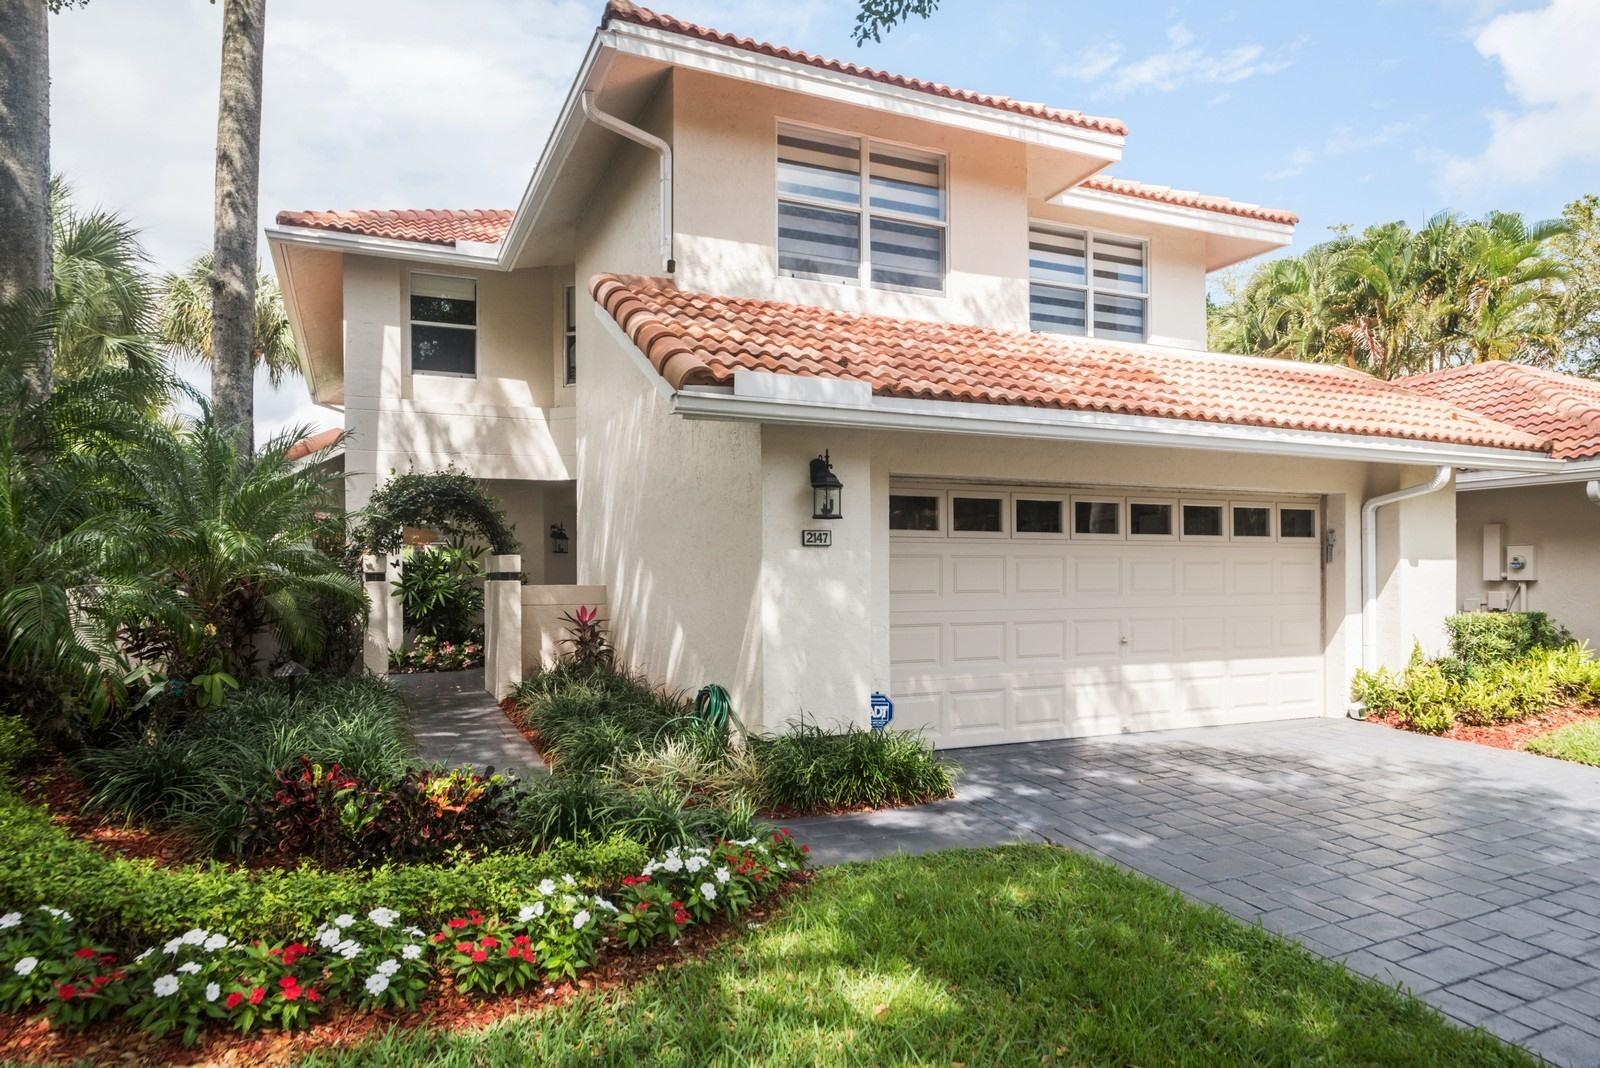 2147 53rd Street, Boca Raton, Florida 33496, 3 Bedrooms Bedrooms, ,2.1 BathroomsBathrooms,A,Townhouse,53rd,RX-10505587